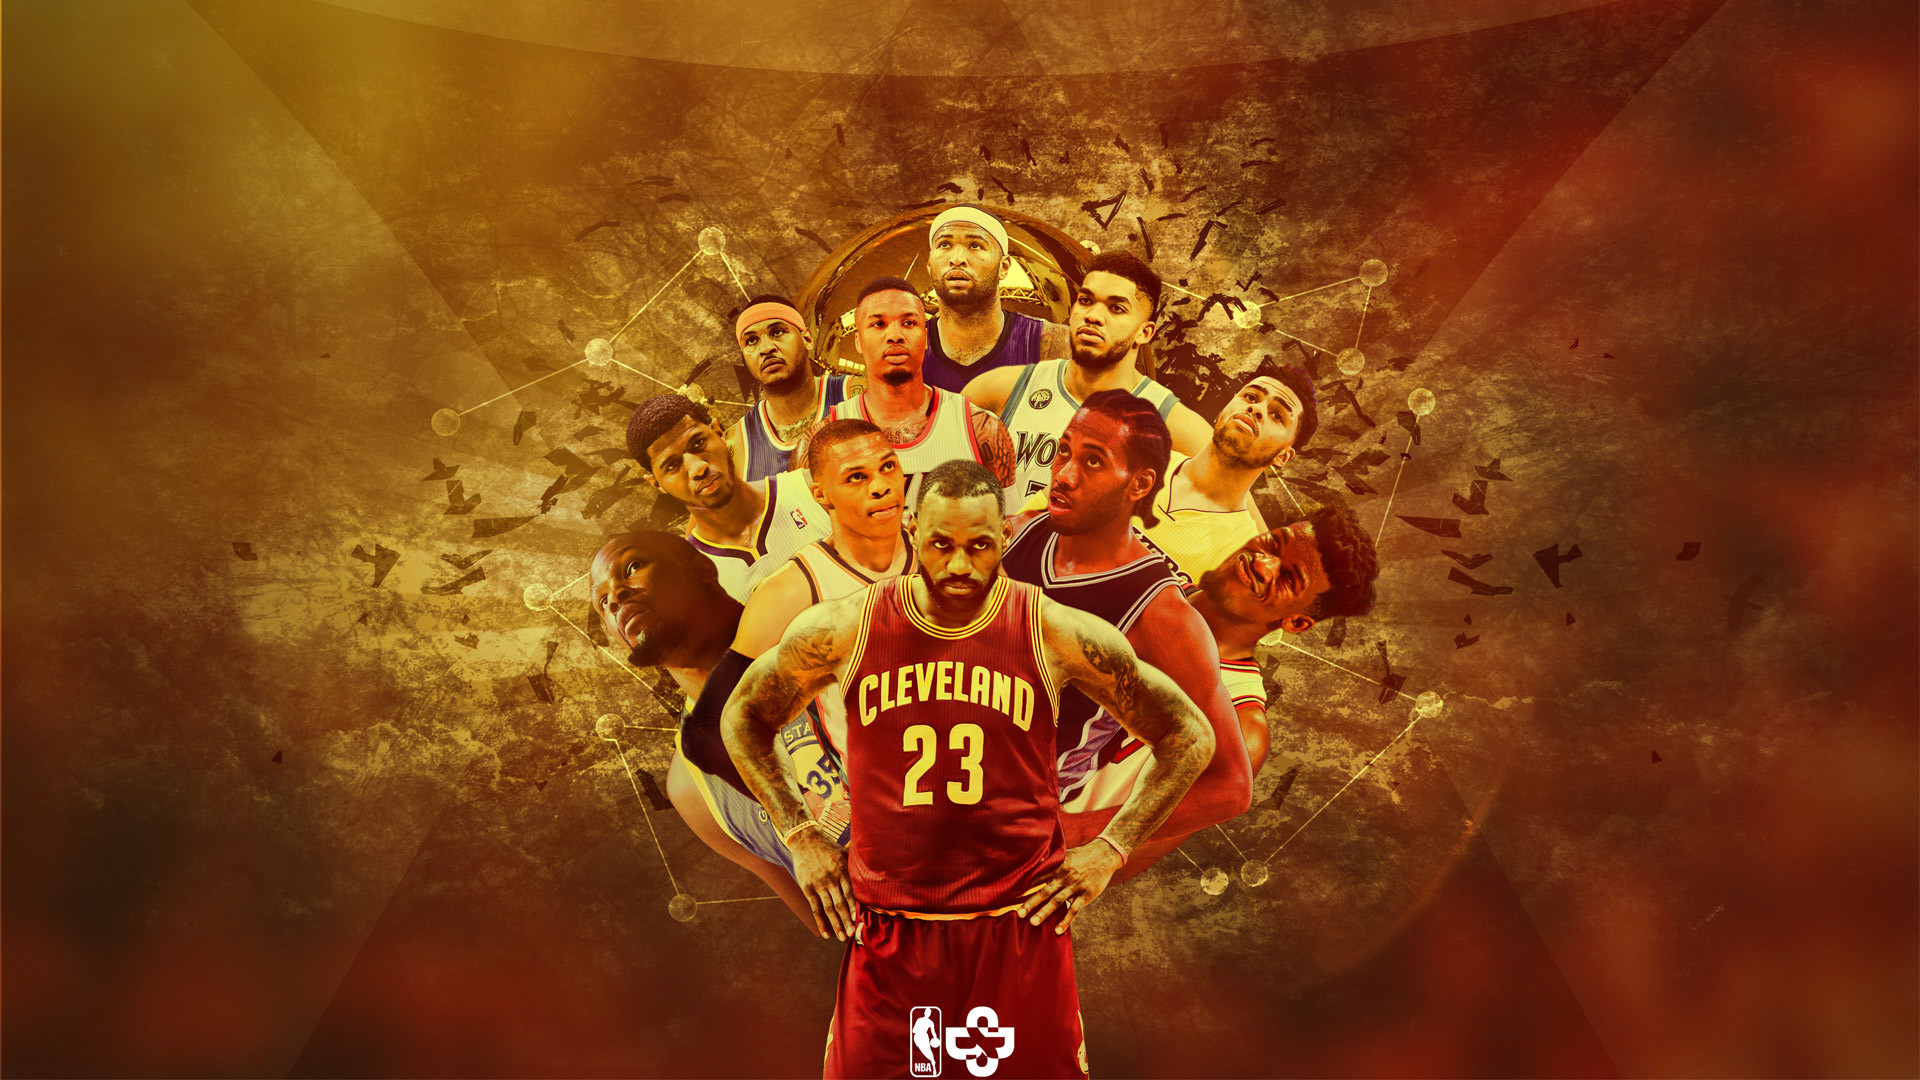 1920x1080 NBA 2K14 CLEVELAND CAVS 2014 2015 EASTERN CONFERENCE CHAMPSSTARTING LEBRON JAMES 201